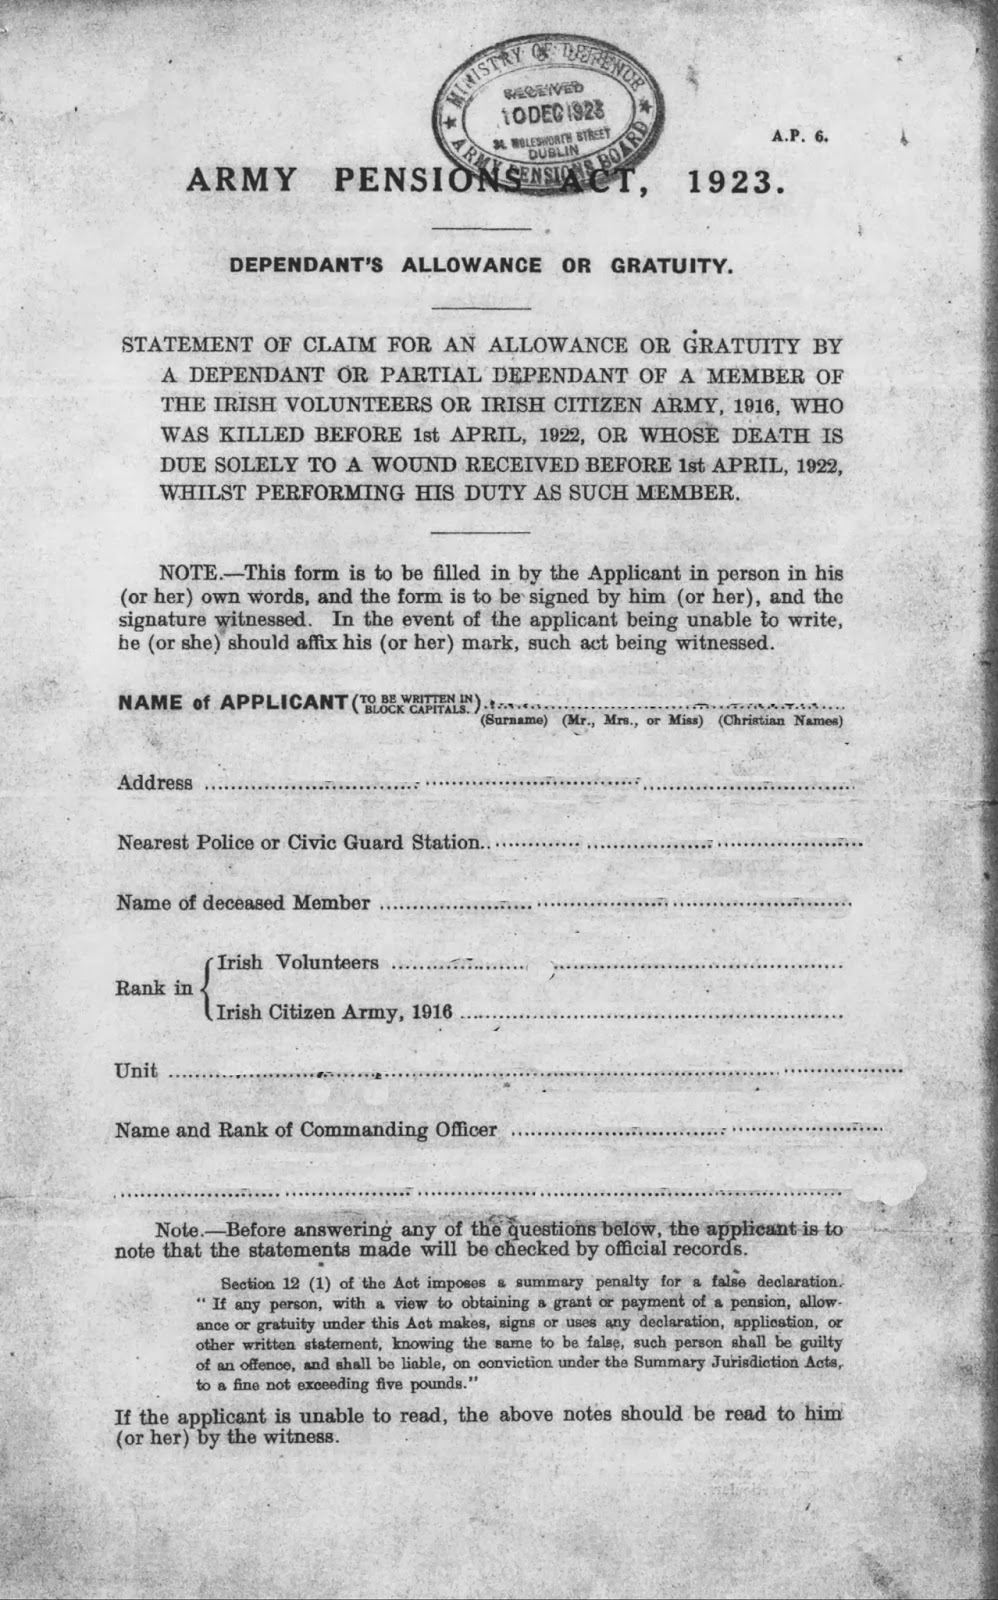 Application Form Irish Army on army sworn statement example, army sop examples, army medical corps, army recruiting application, army letter of acceptance, army privacy act statement, direct deposit sign-up form, army personal data sheet, sample direct deposit form, employee action form, army counseling examples, blank employee incident report form, army code of conduct, army dental corps, army home, army trips form.pdf, army letter of application, sales tax exemption form, army women's basketball, army military records search,